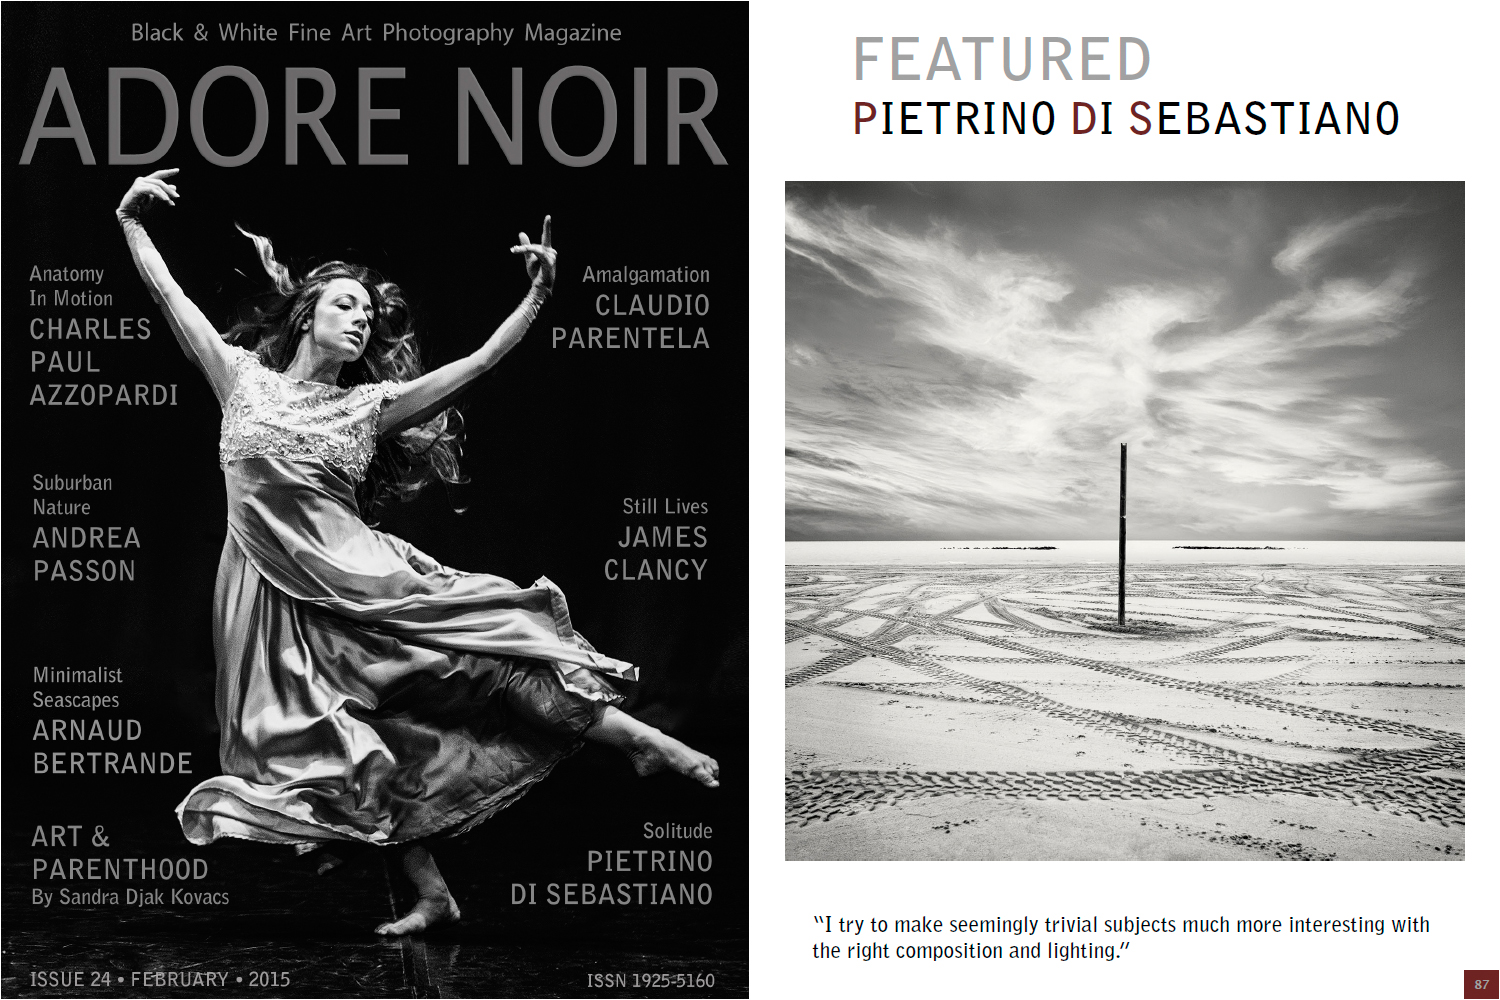 Black white fine art photography magazine adore noir issue 24 february 2015 special thanks to the editors of adore noir magazine